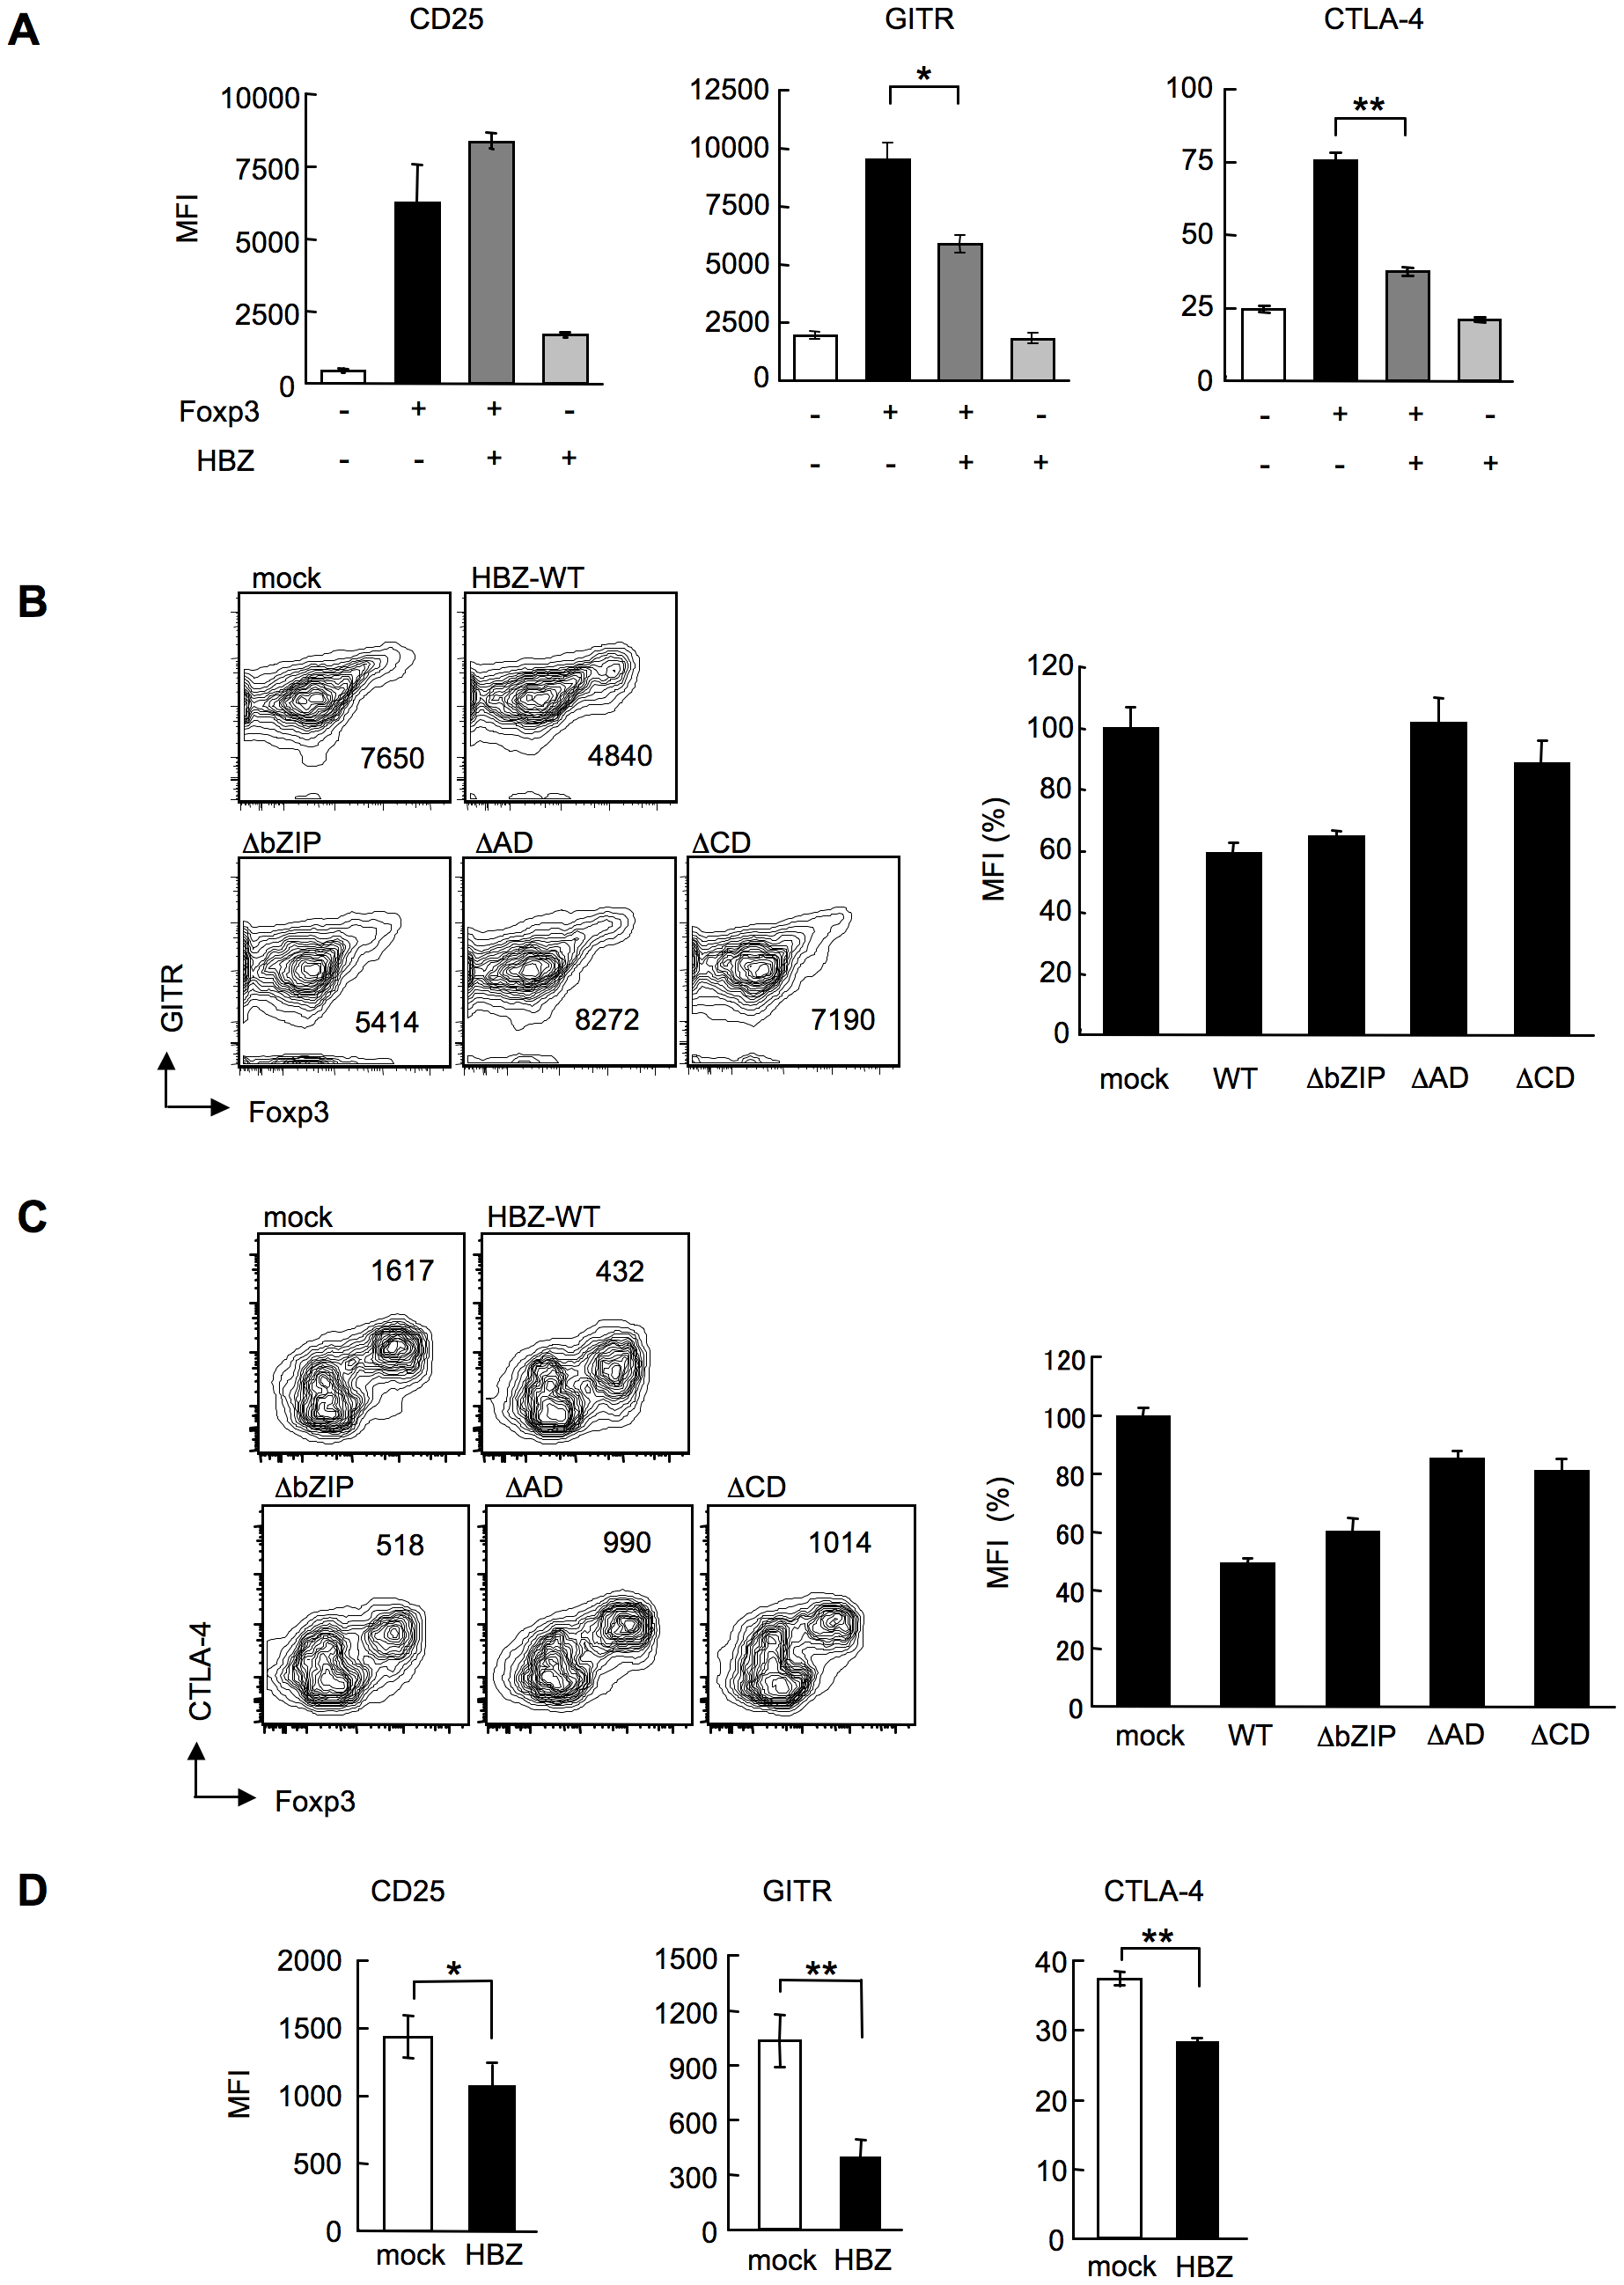 HBZ inhibites Foxp3-mediated CTLA-4 and GITR expression <i>in vitro</i>.